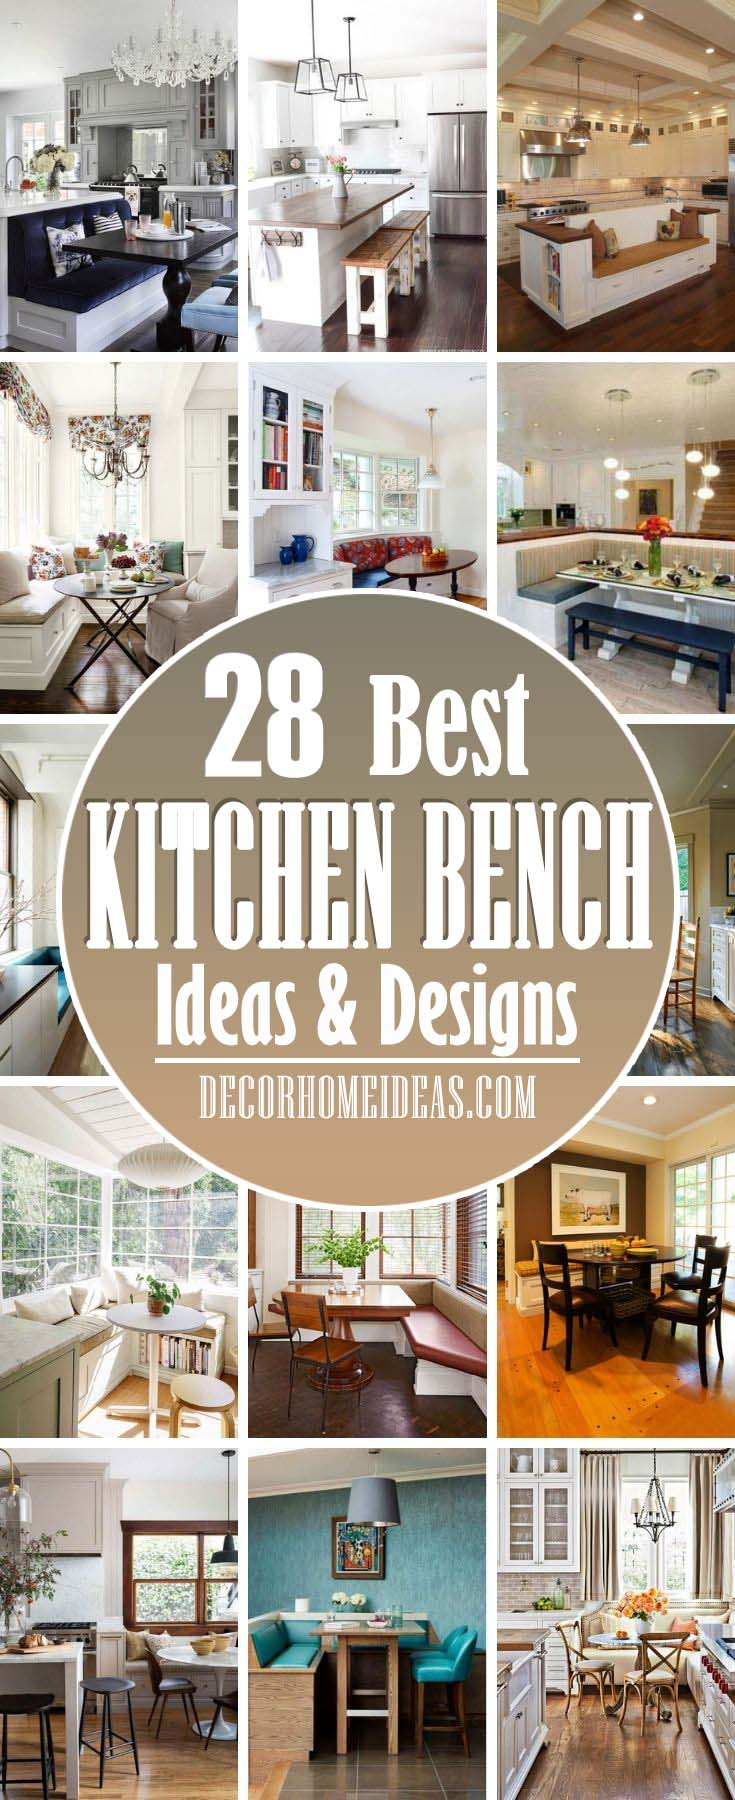 Best Kitchen Bench Ideas. Branches are perfect choice for small kitchens where there is no enough space for tables, bars or islands. They are perfect for family breakfasts or easy dining. #decorhomeideas